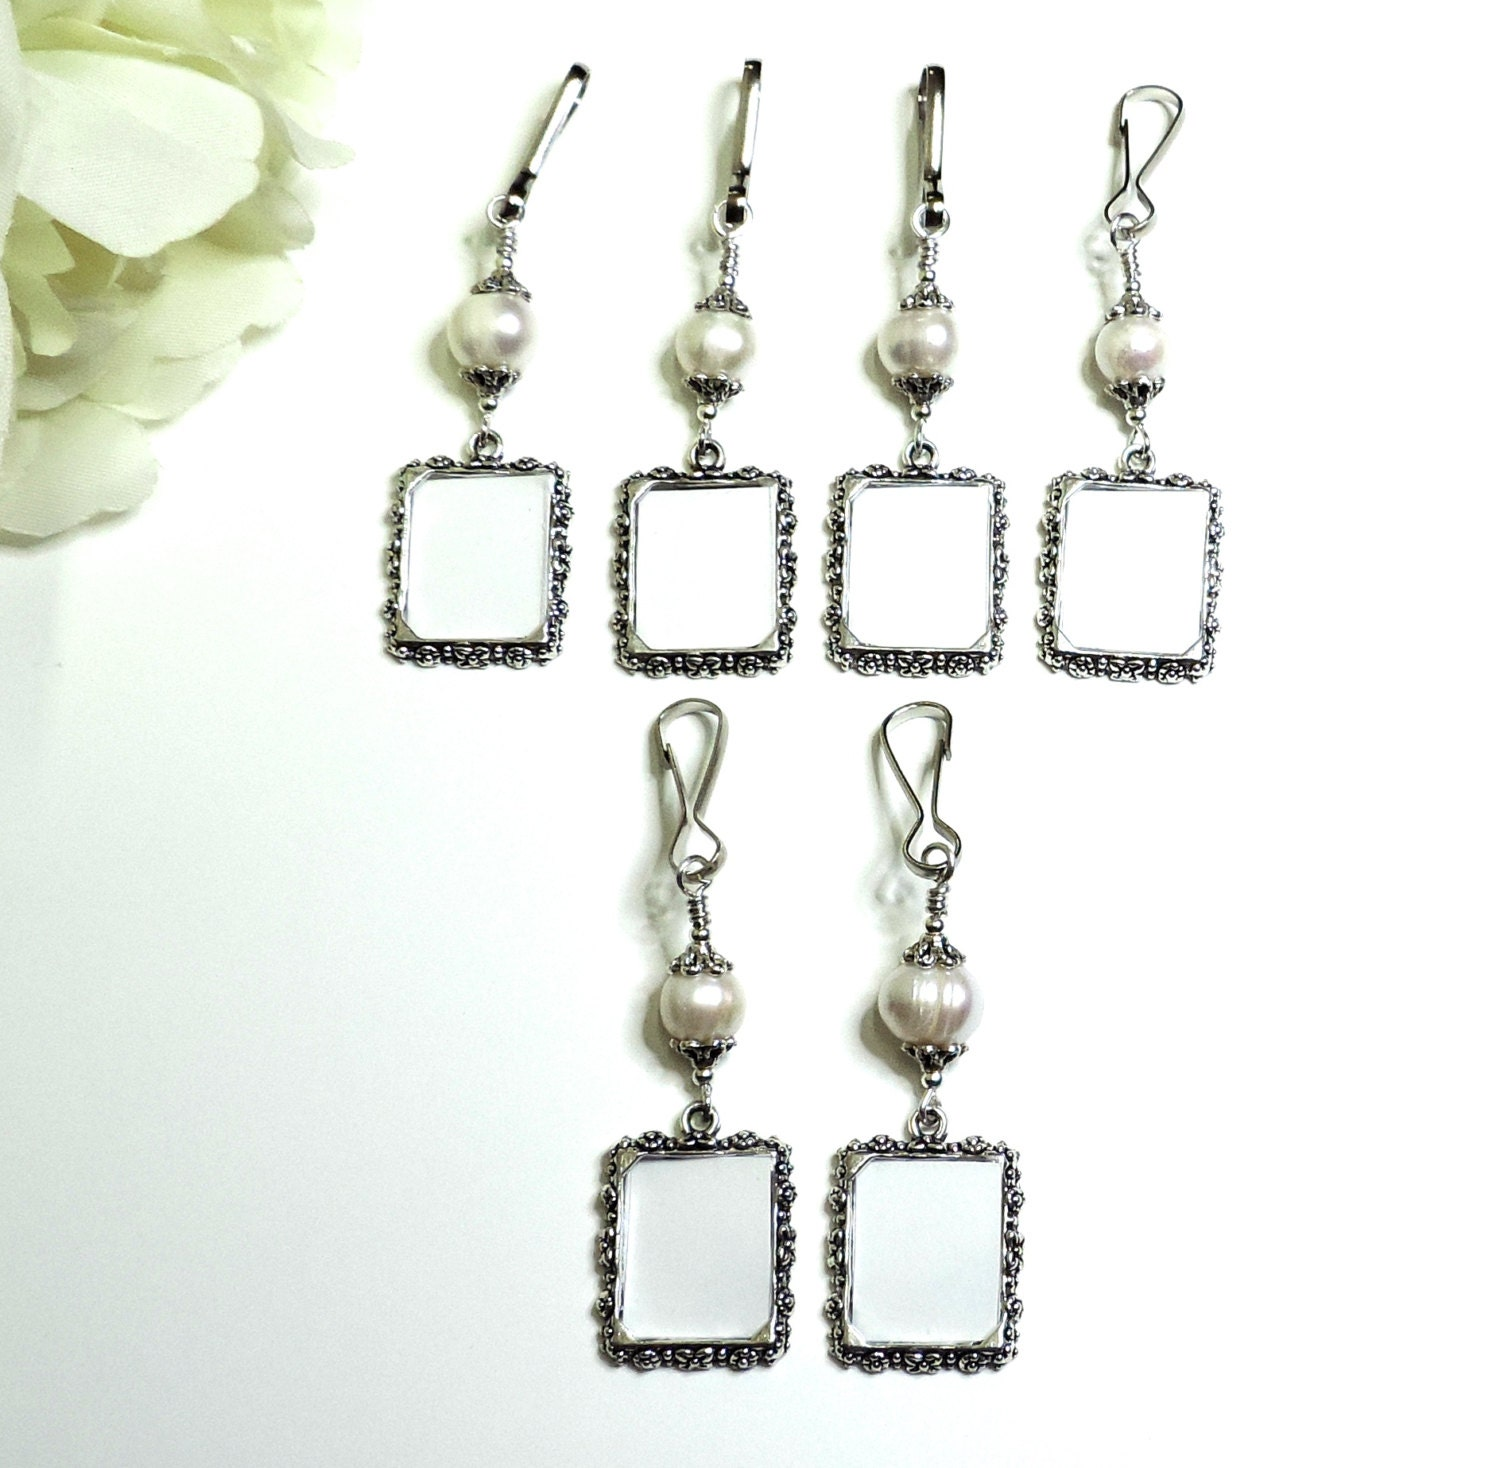 pearl wedding bouquet photo charms x6 memorial charms small